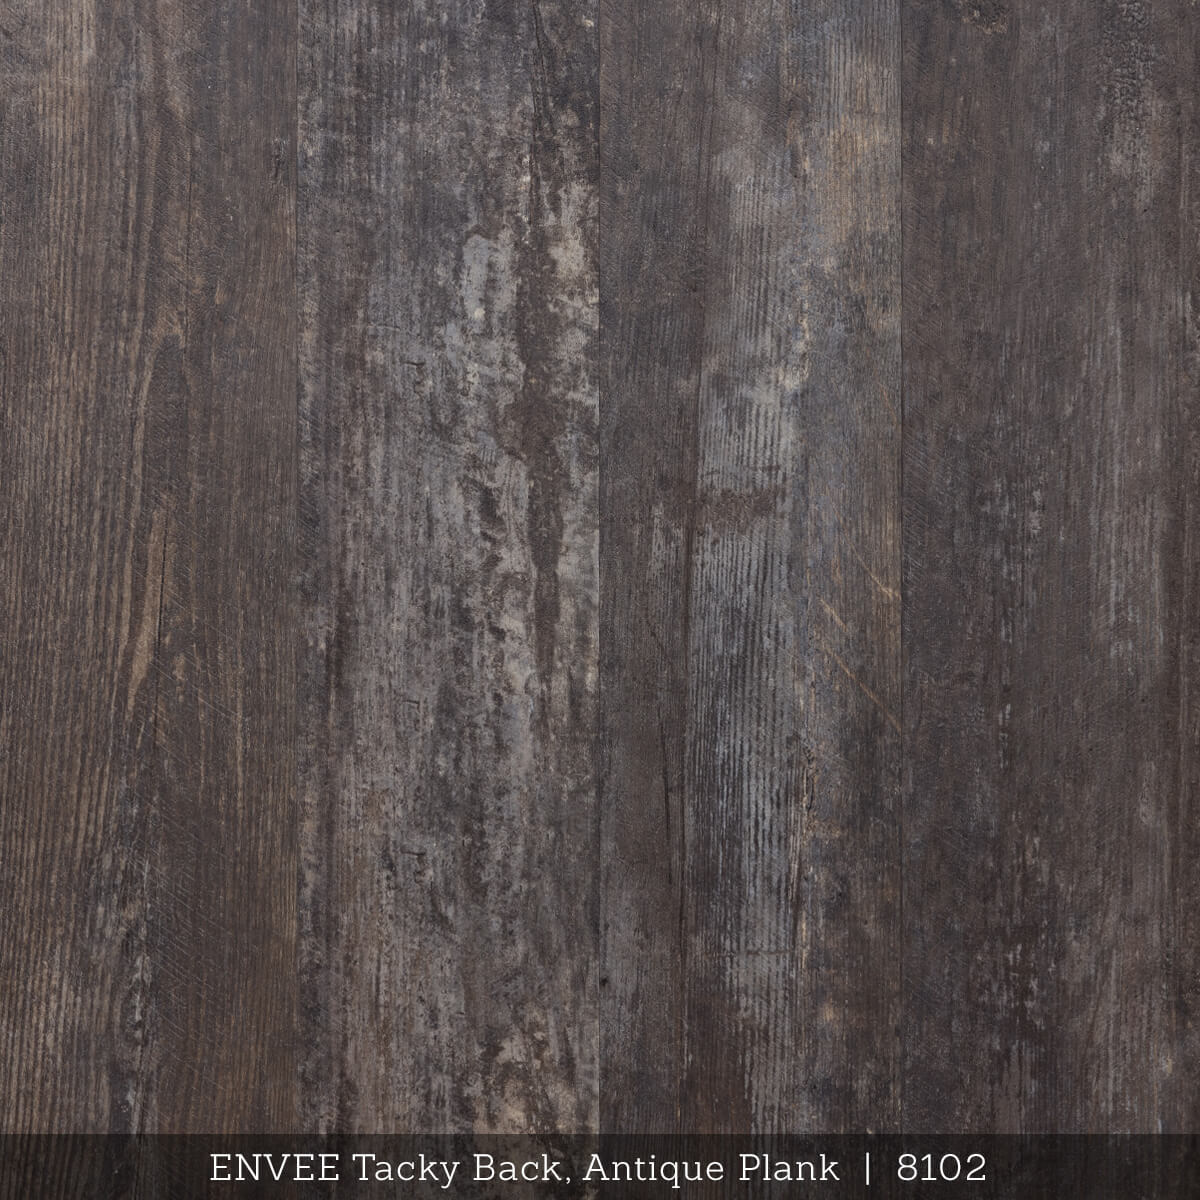 Envee Tacky Back, Antique Plank